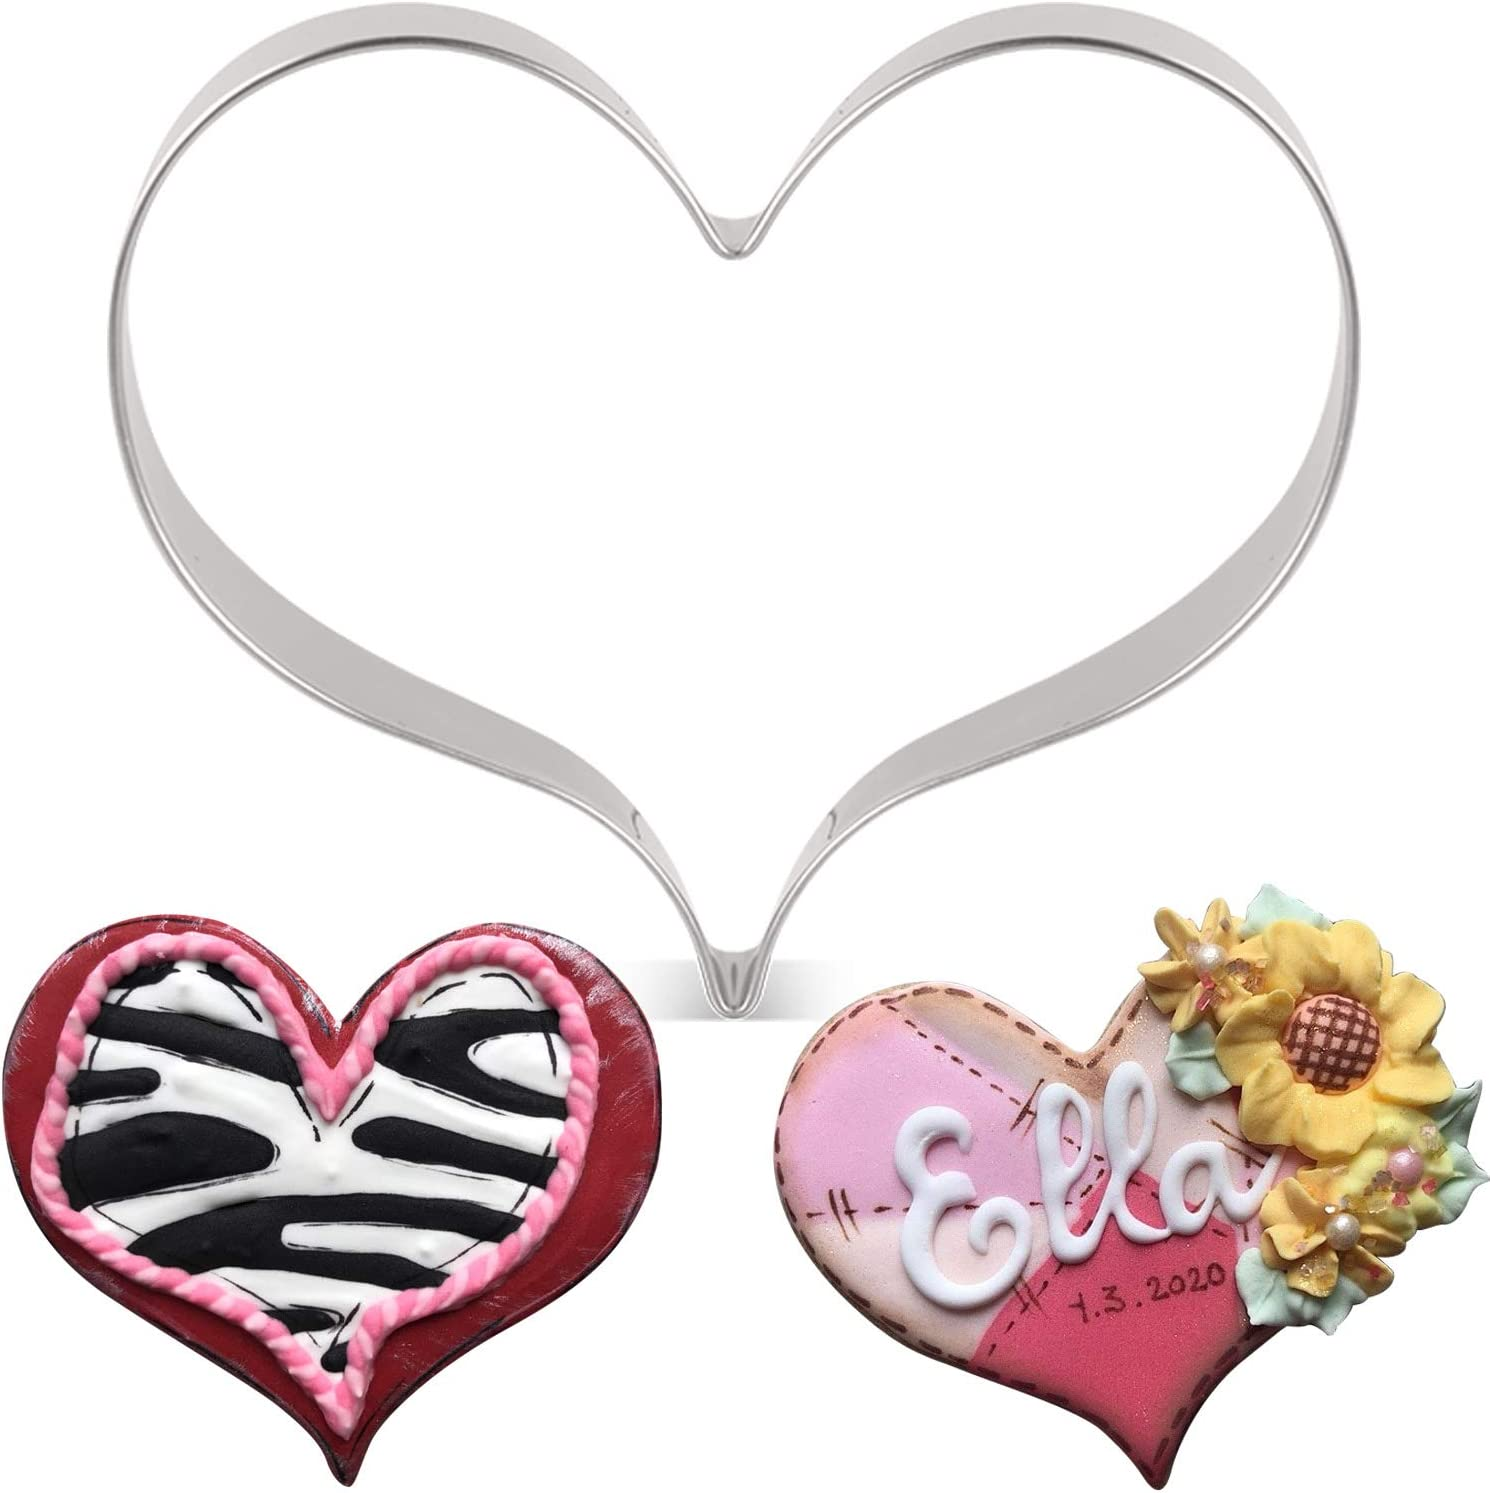 LILIAO Heart Cookie Cutter for Mother's Baby Shower Max 86% OFF Max 54% OFF Wedding Day